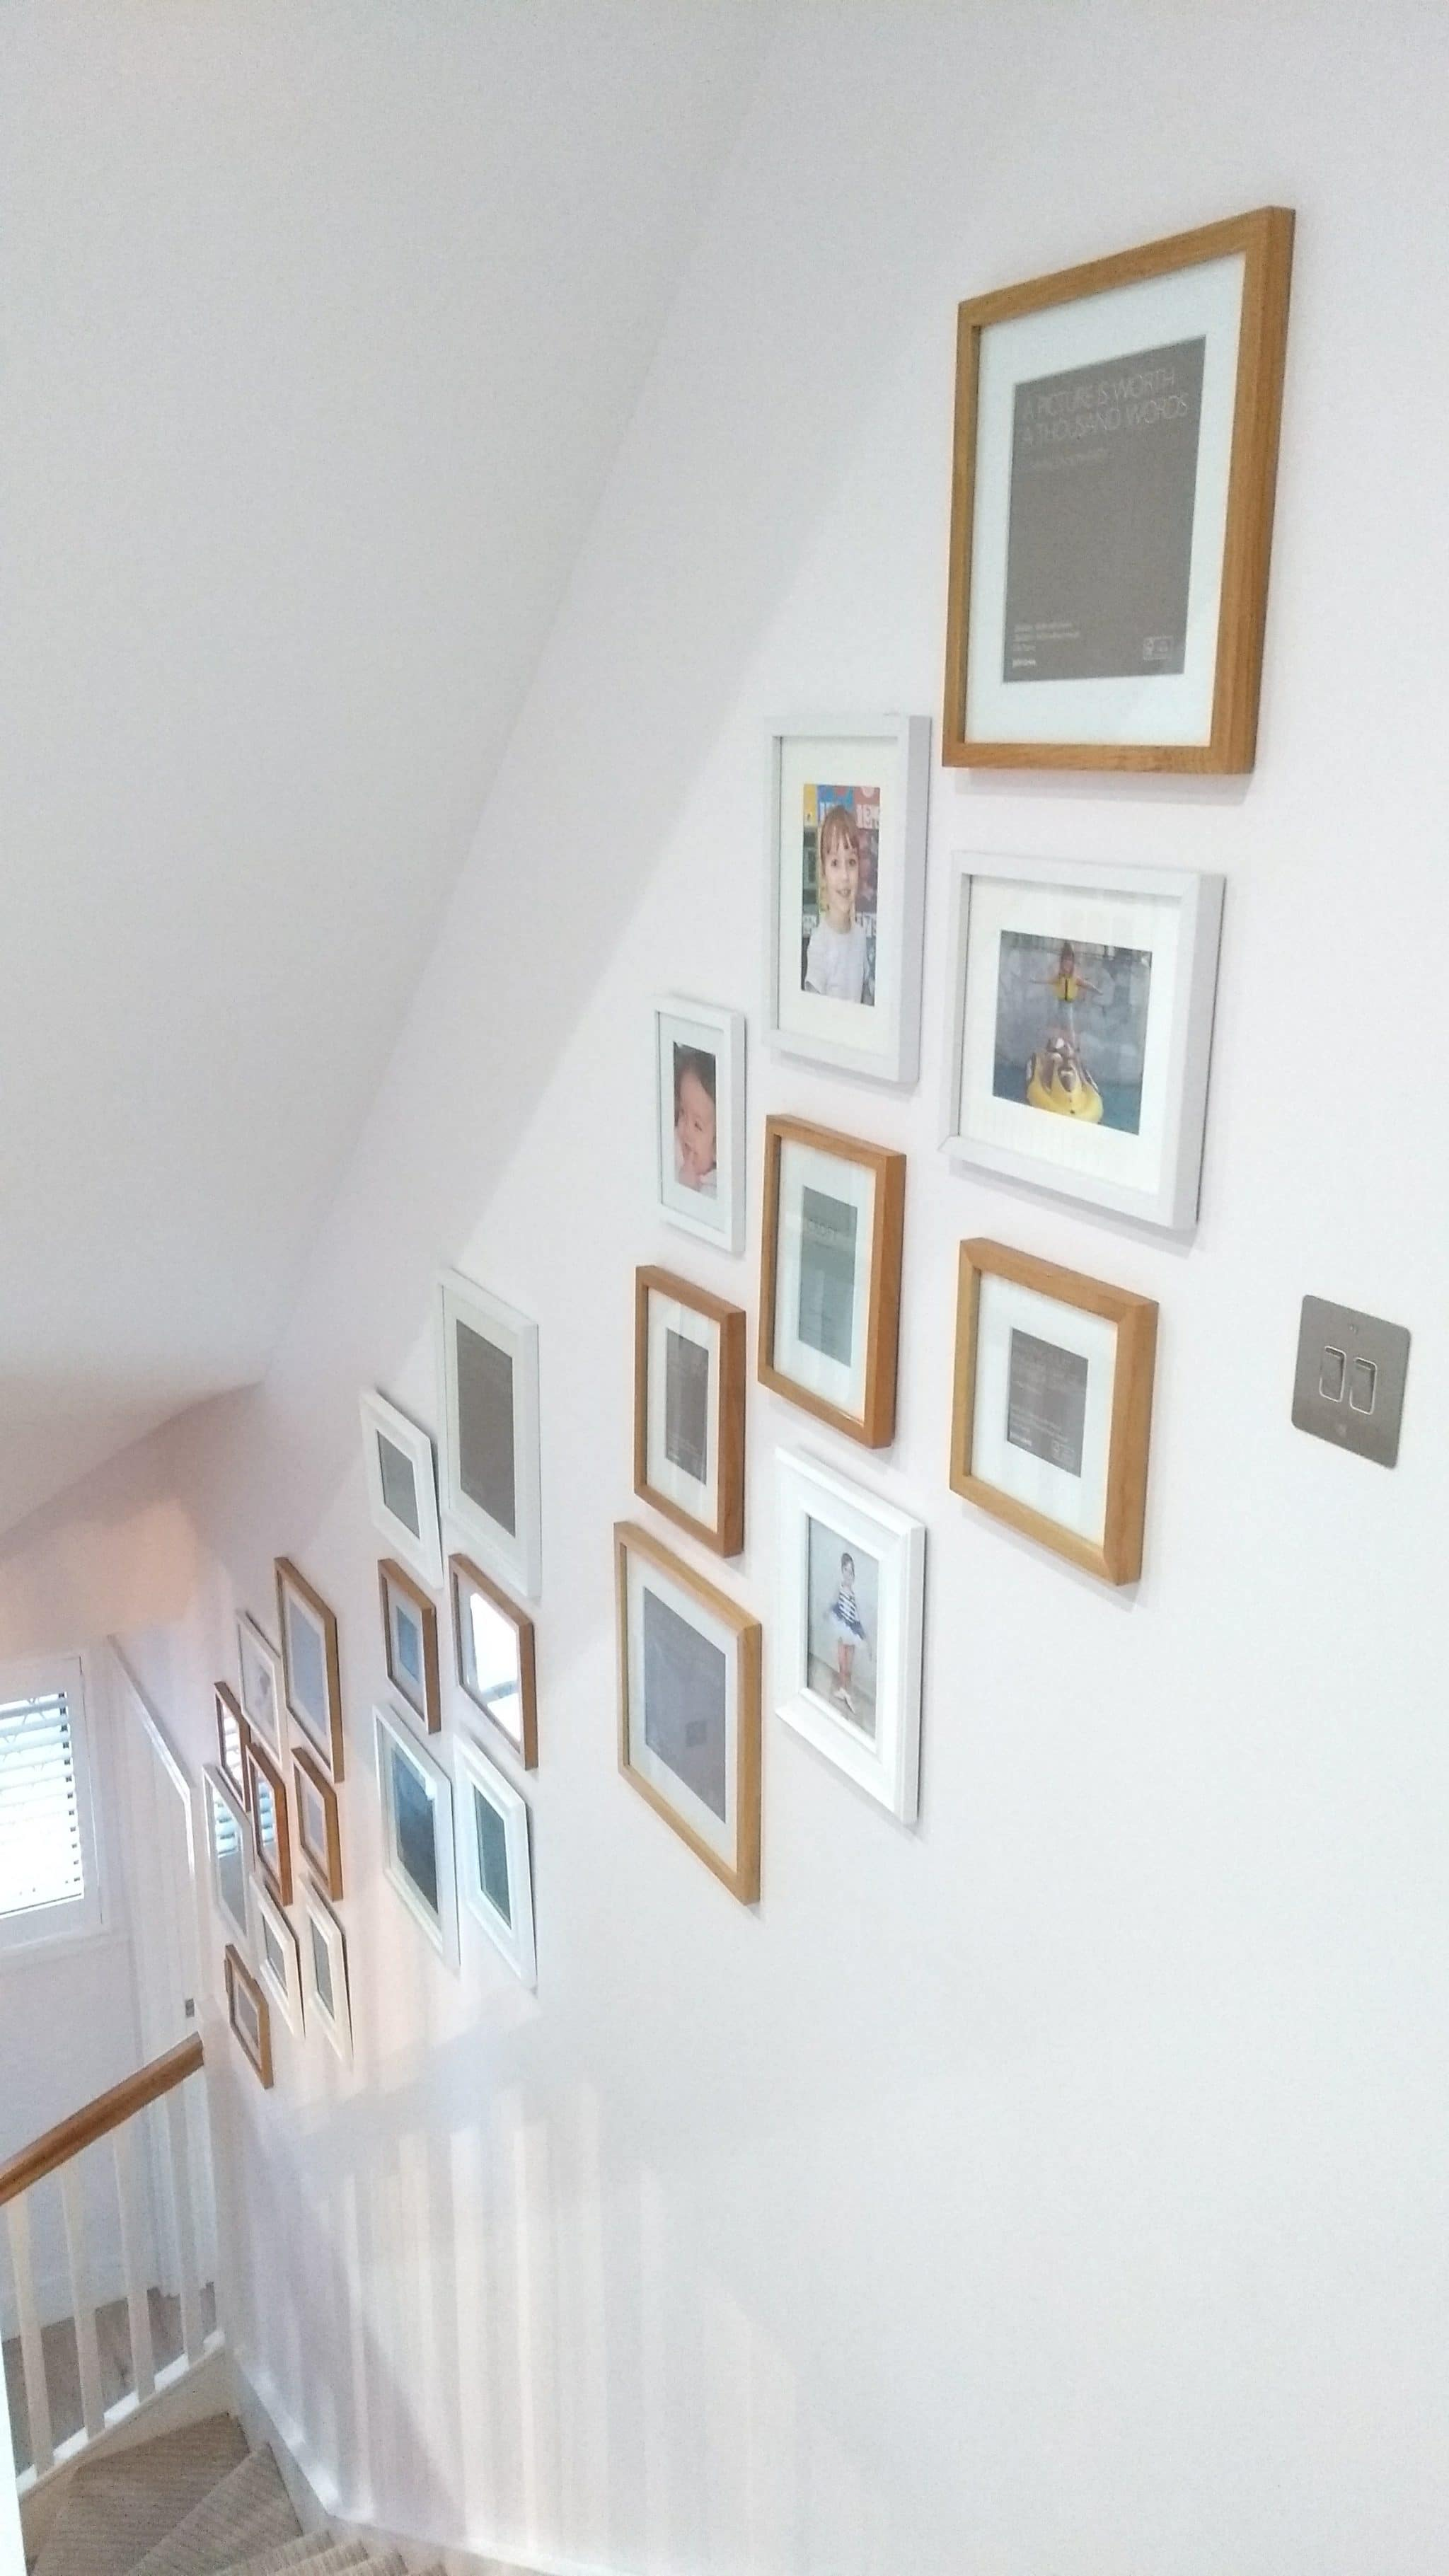 A 25 picture collage wall running along the staircase in Sevenoaks, Kent.